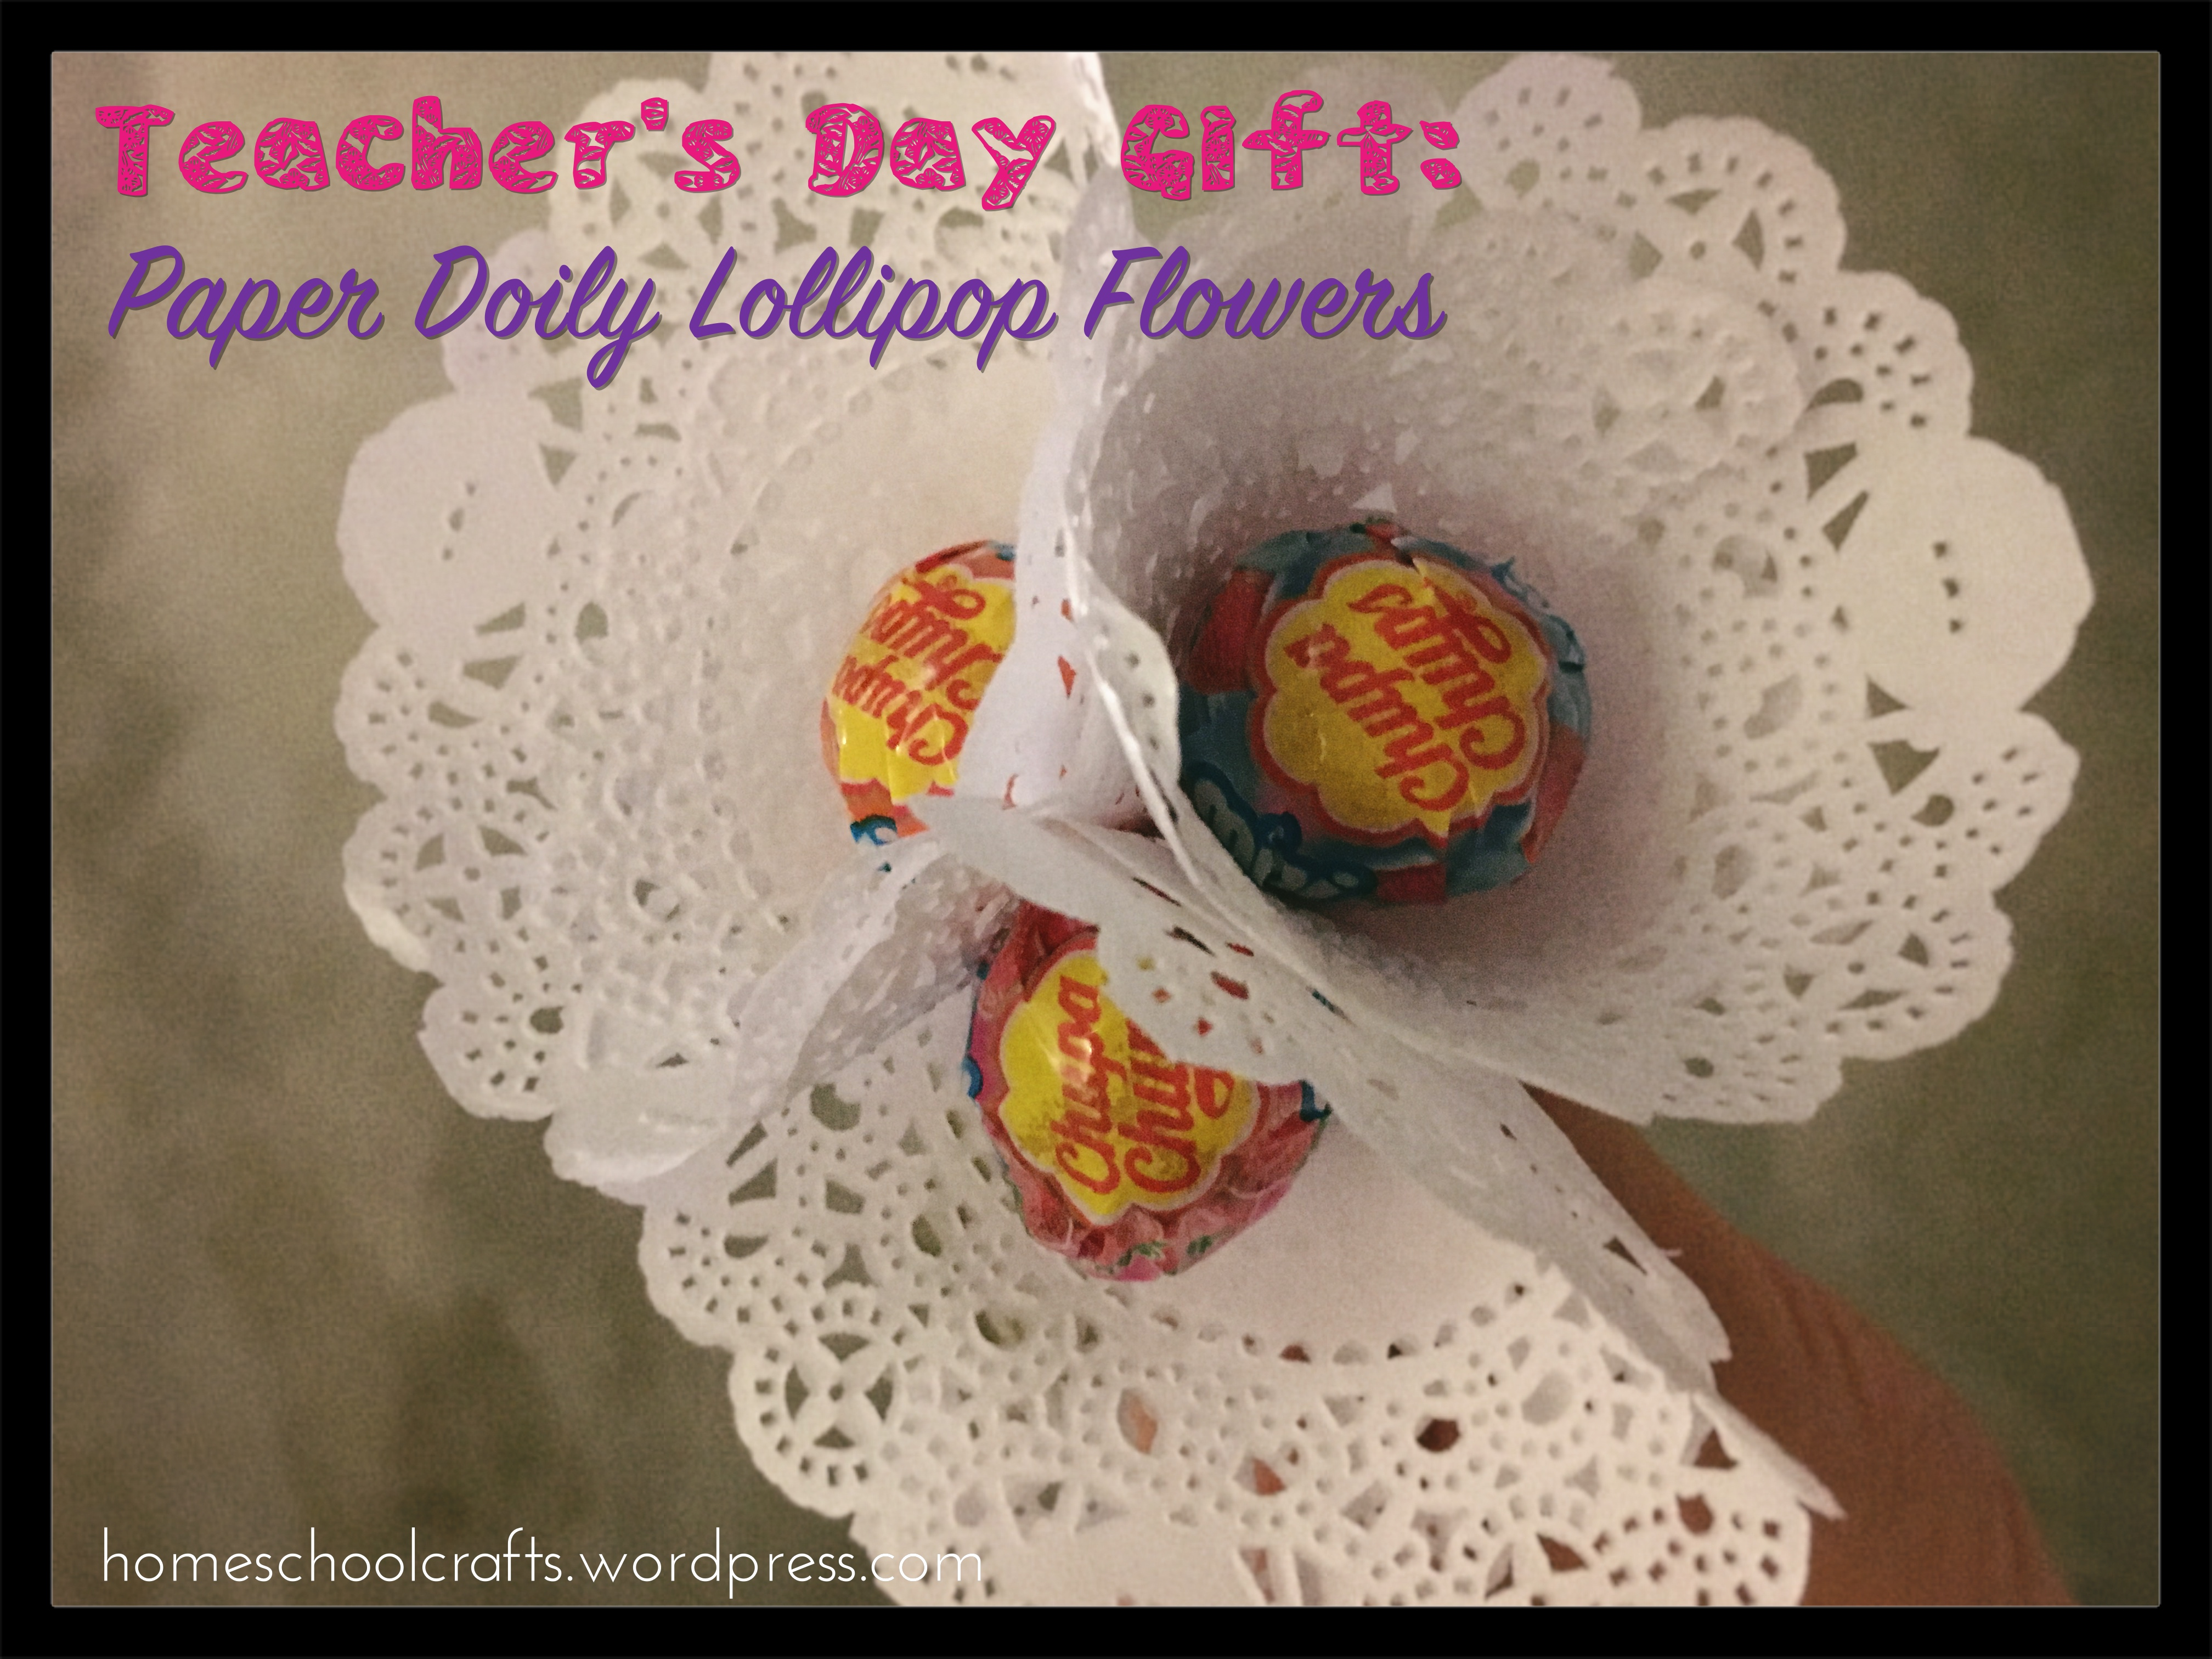 Teachers Day 2016 Paper Doily Lollipop Flowers Homeschool Crafts